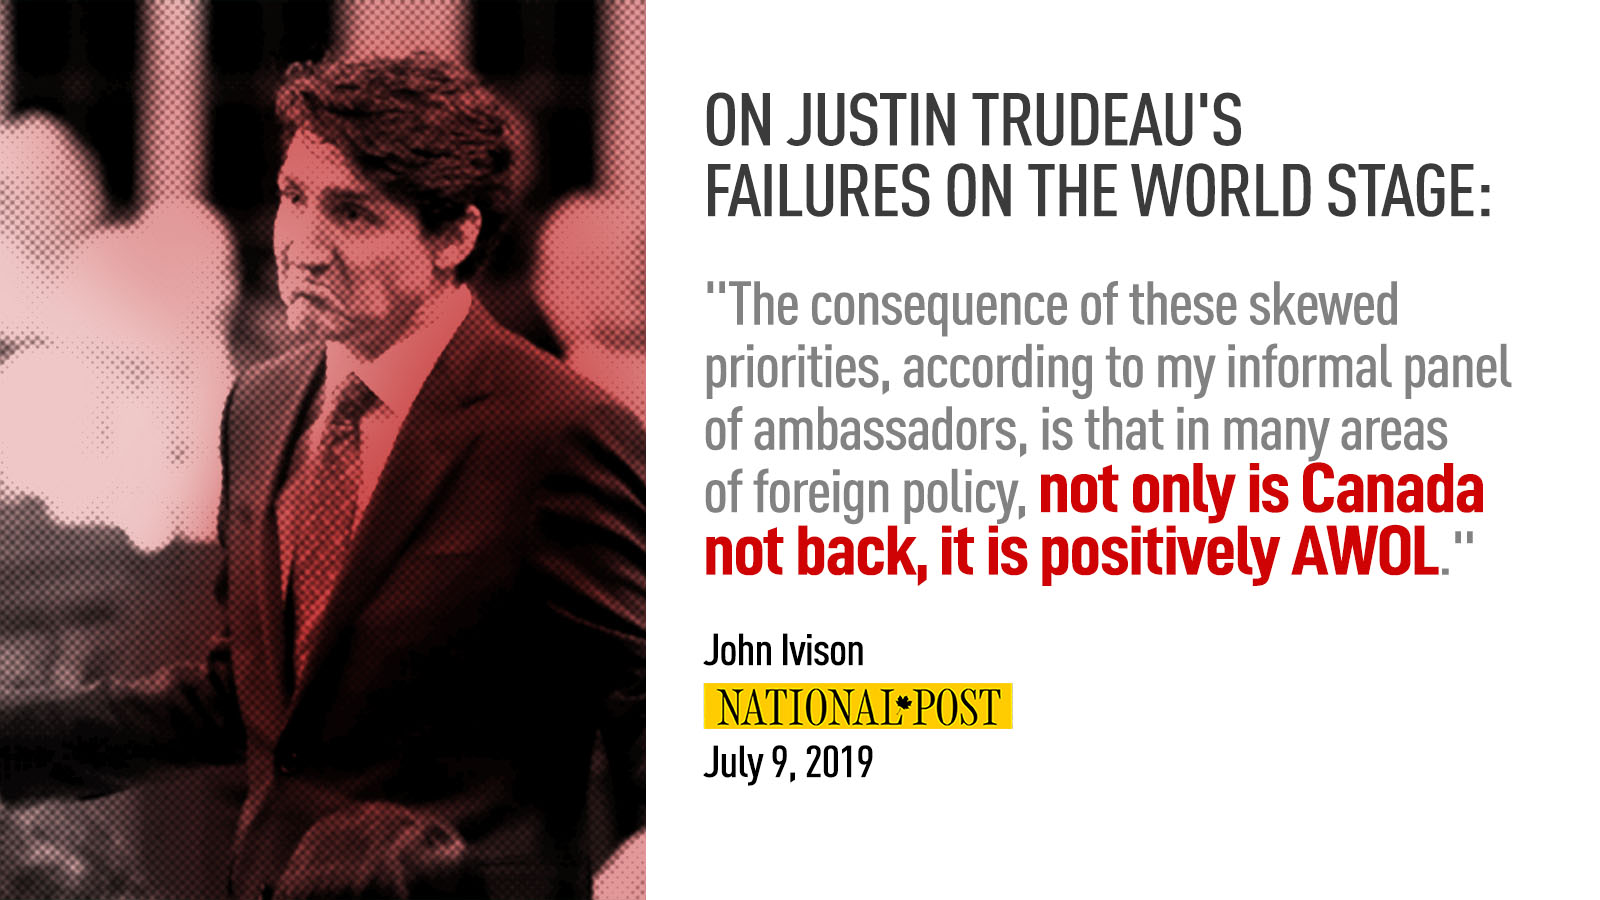 TRUDEAU'S POOR JUDGEMENT ON THE WORLD STAGE RESULTS IN DIRE CONSEQUENCES FOR CANADIANS